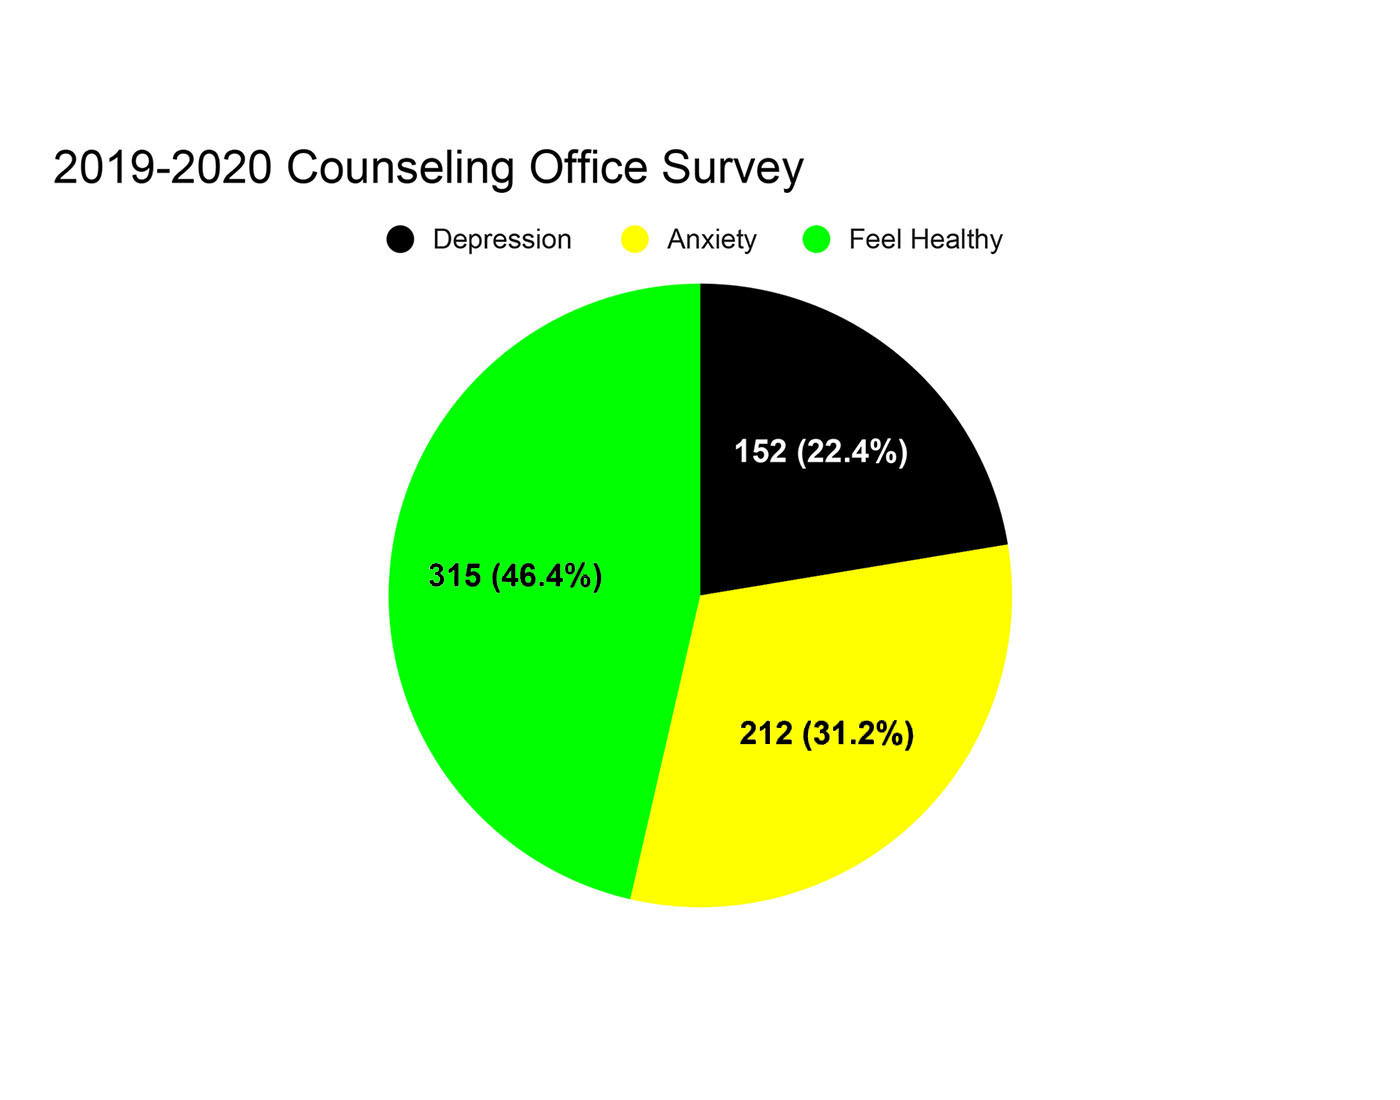 Results from a survey given by the OHS counseling office